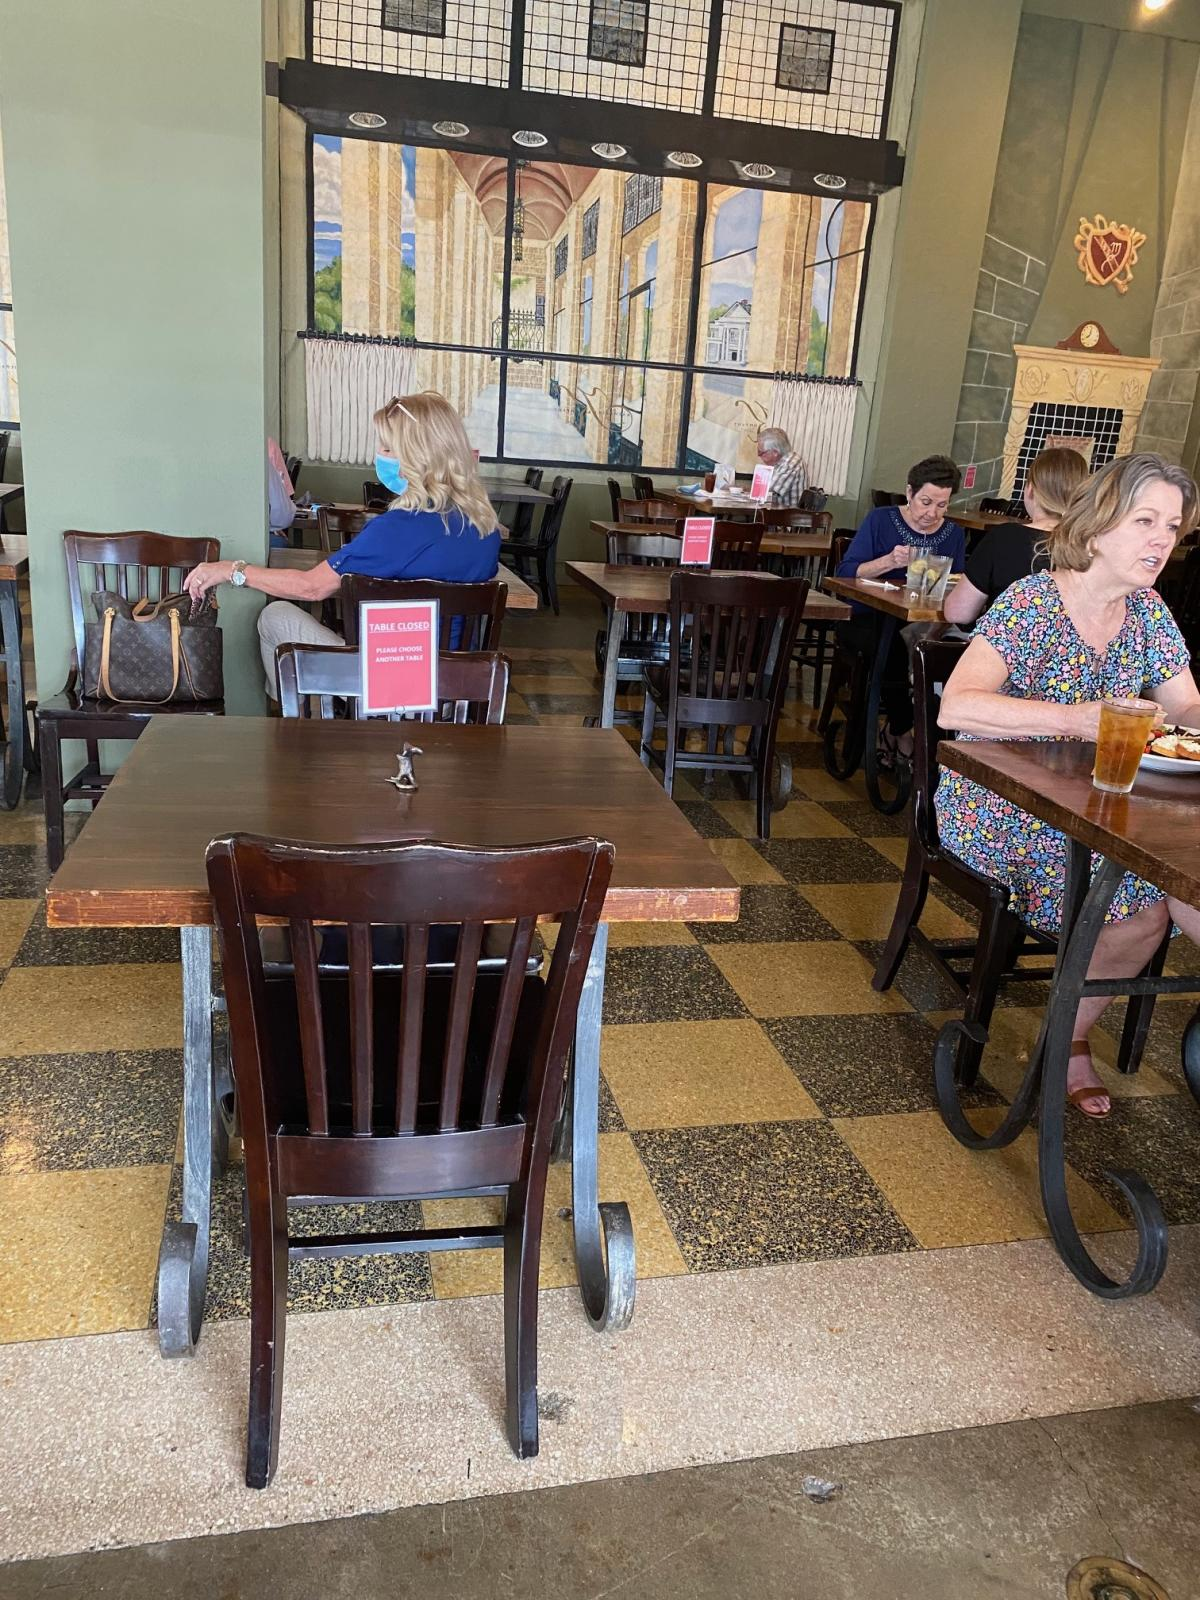 Using clear signage, restaurants like Katherine's in Beaumont help customers maintain proper distancing.